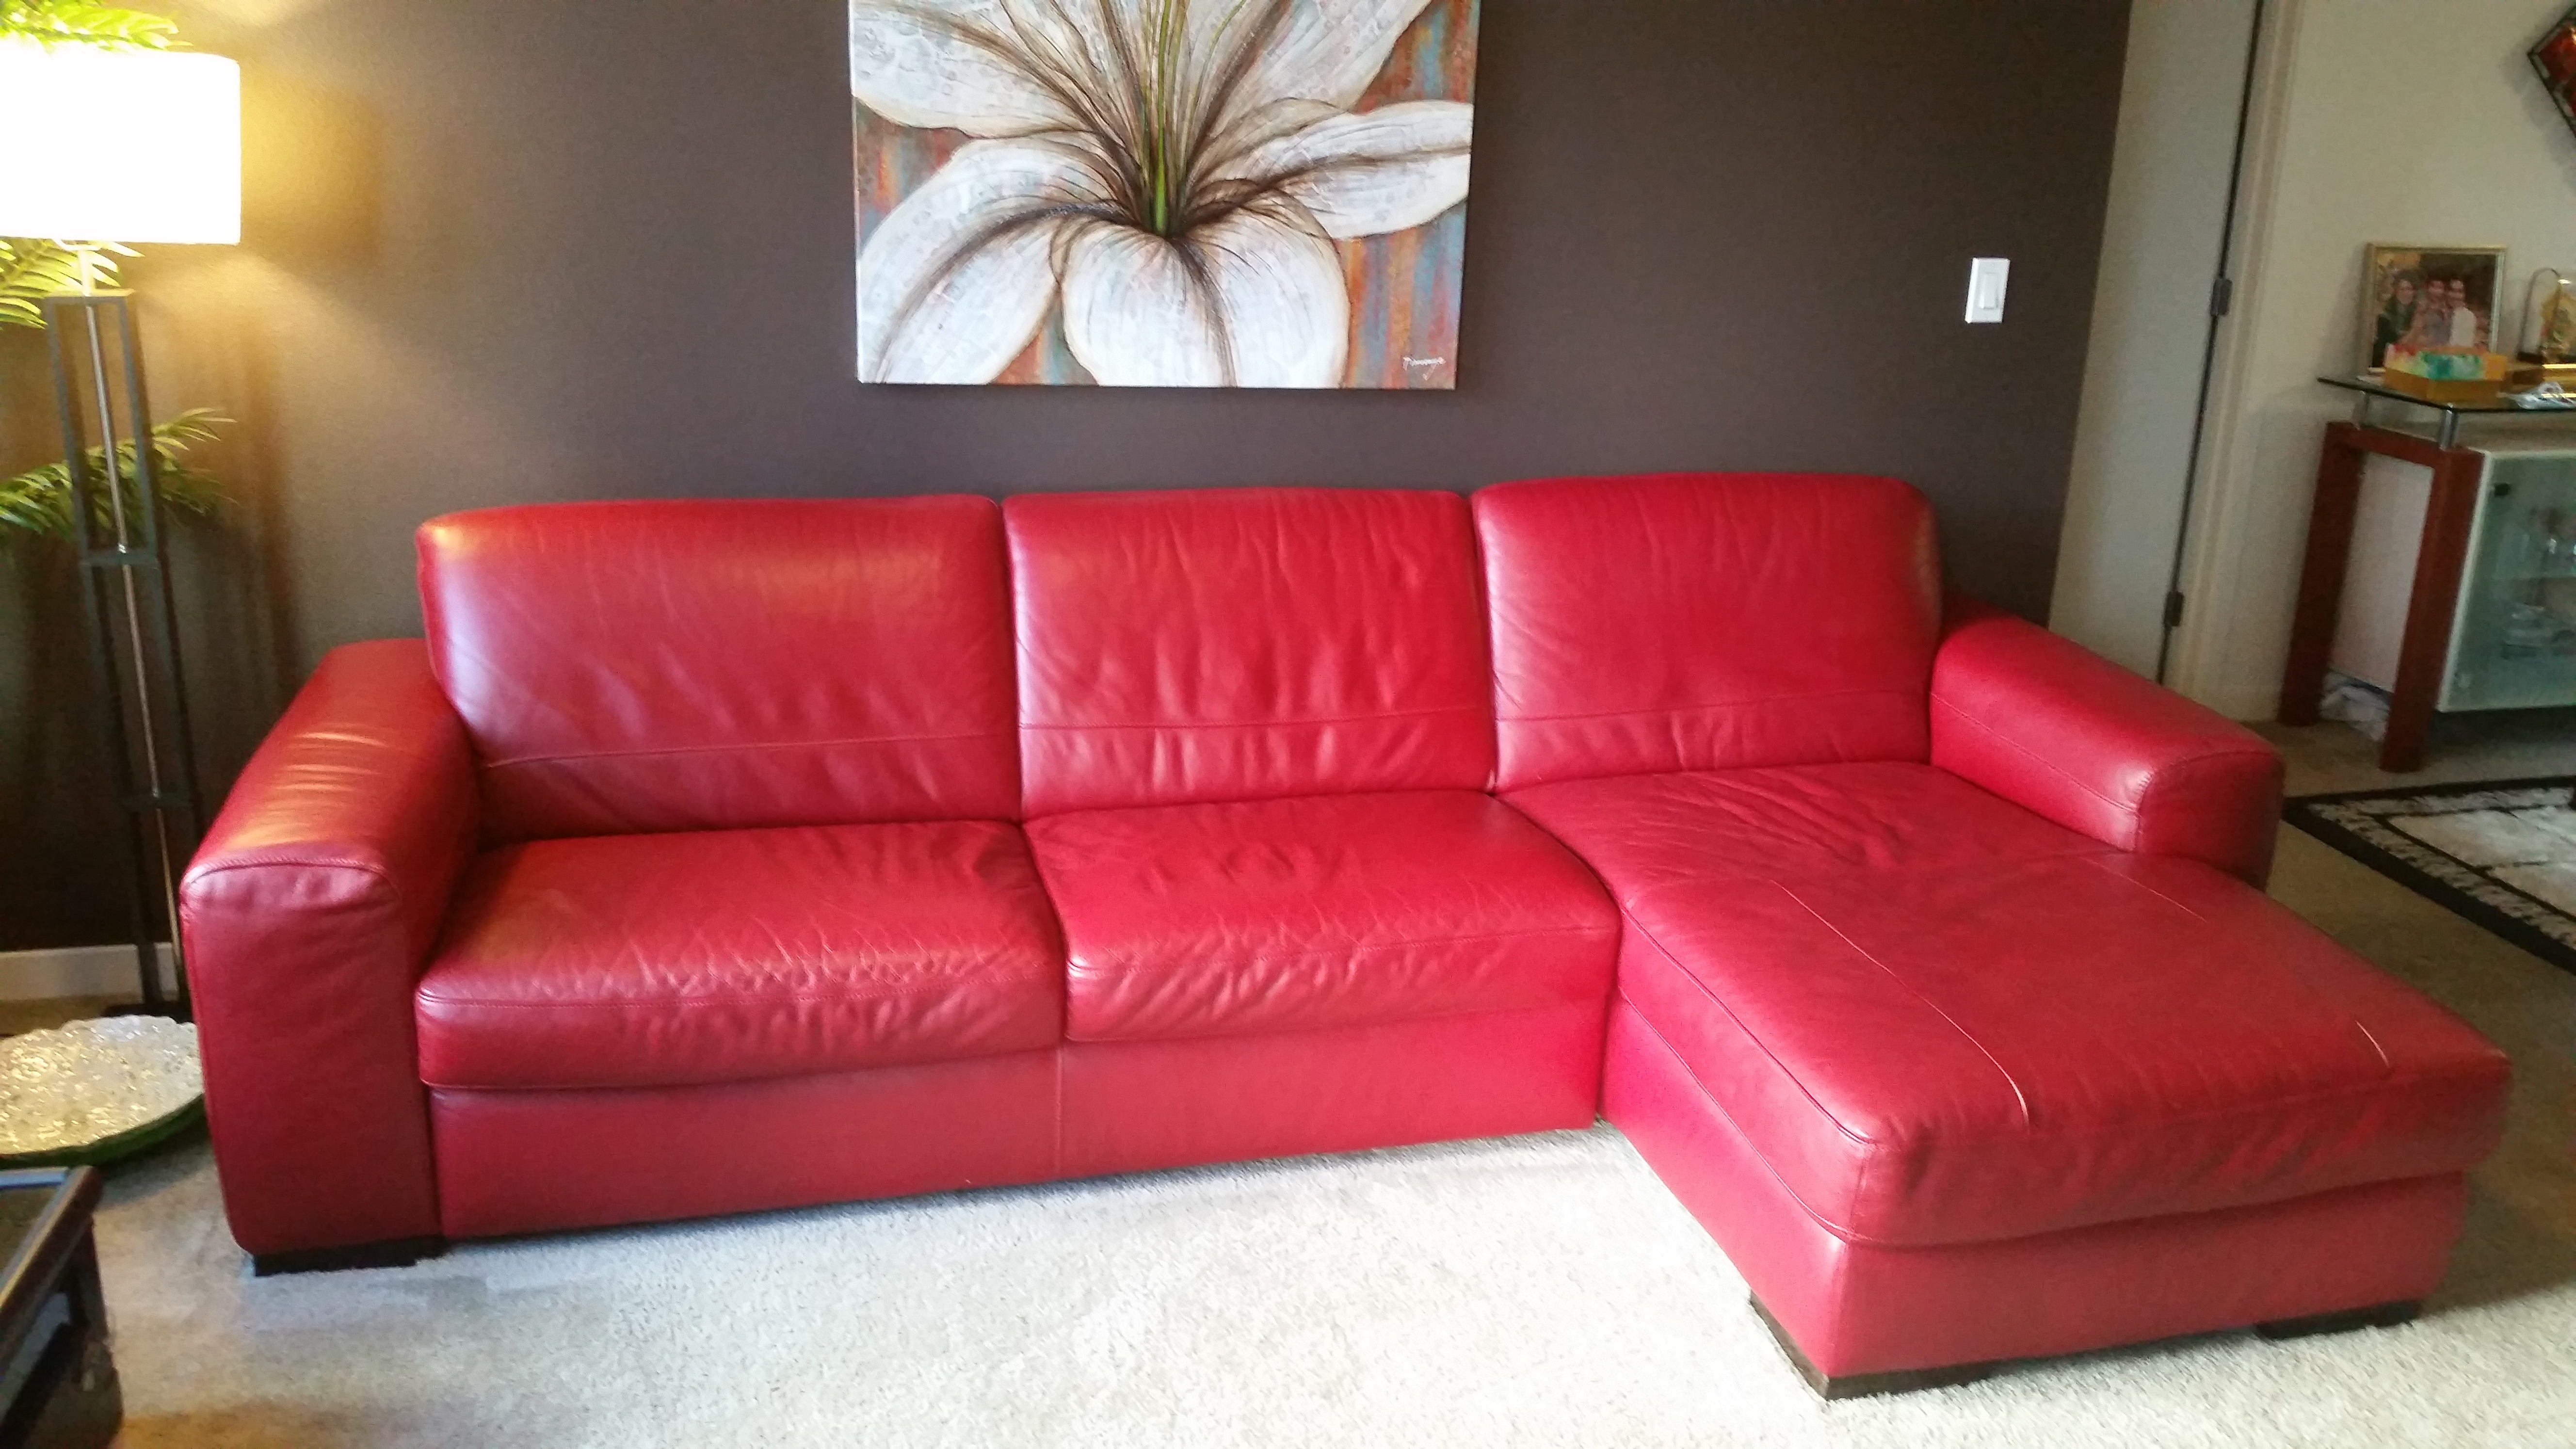 Striking Geneva Leather Sofa And Chaise 499 Connecting People In San Ramon Dublin Pleasanton Livermore Danville